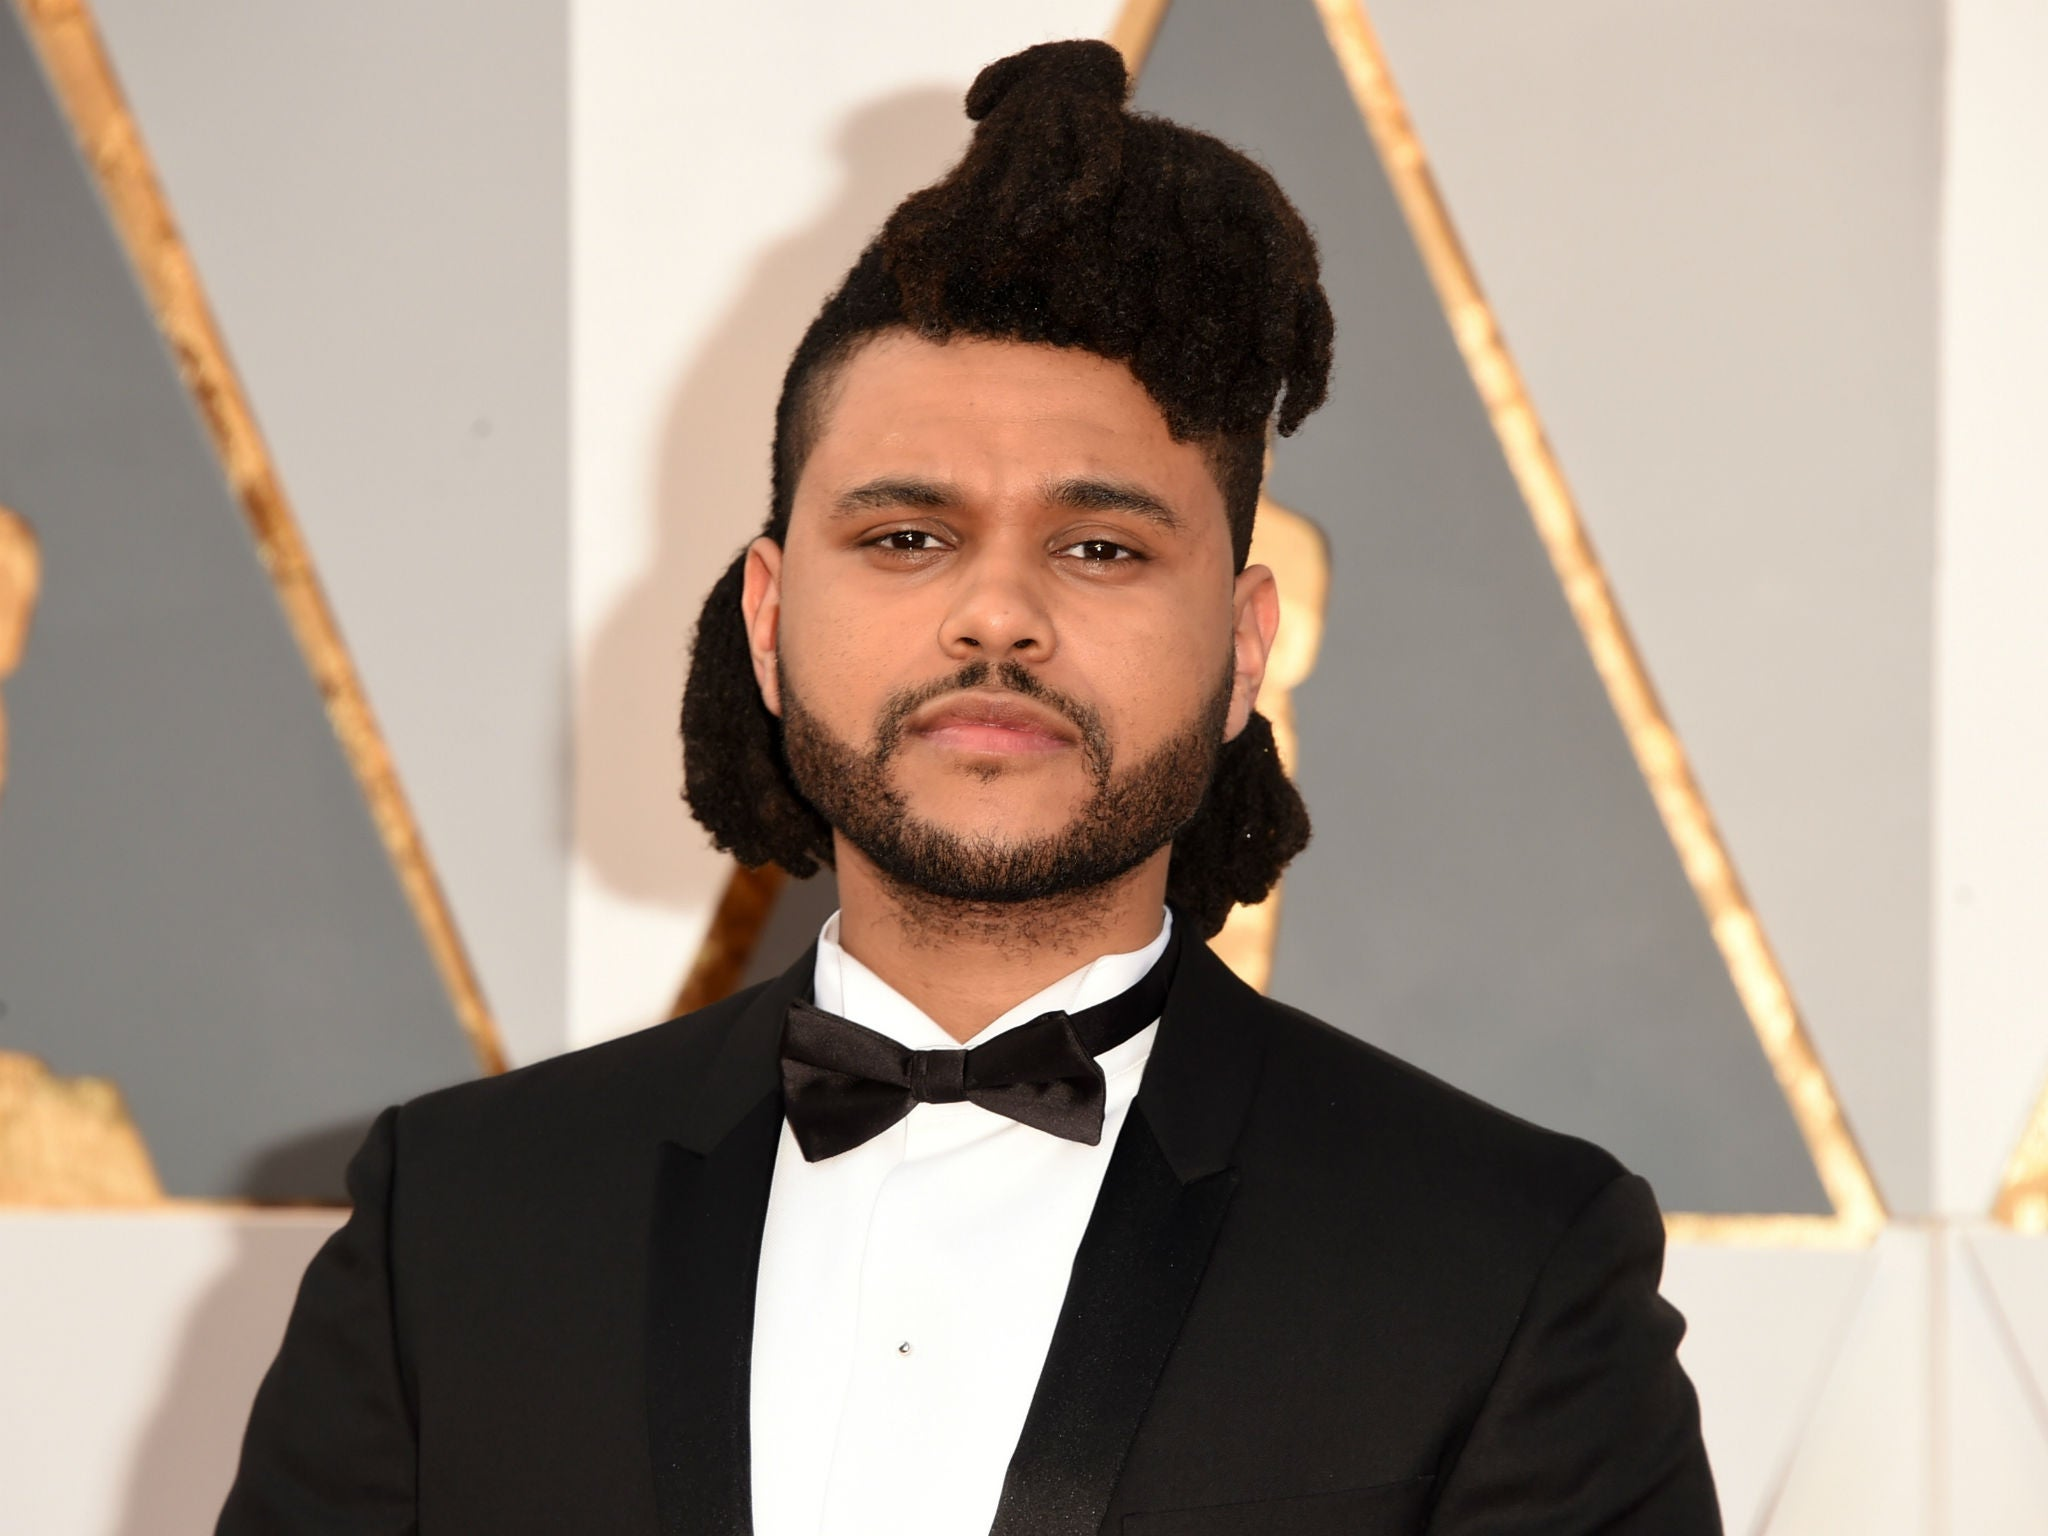 The Weeknd Cuts Ties With HM Over Racist Image